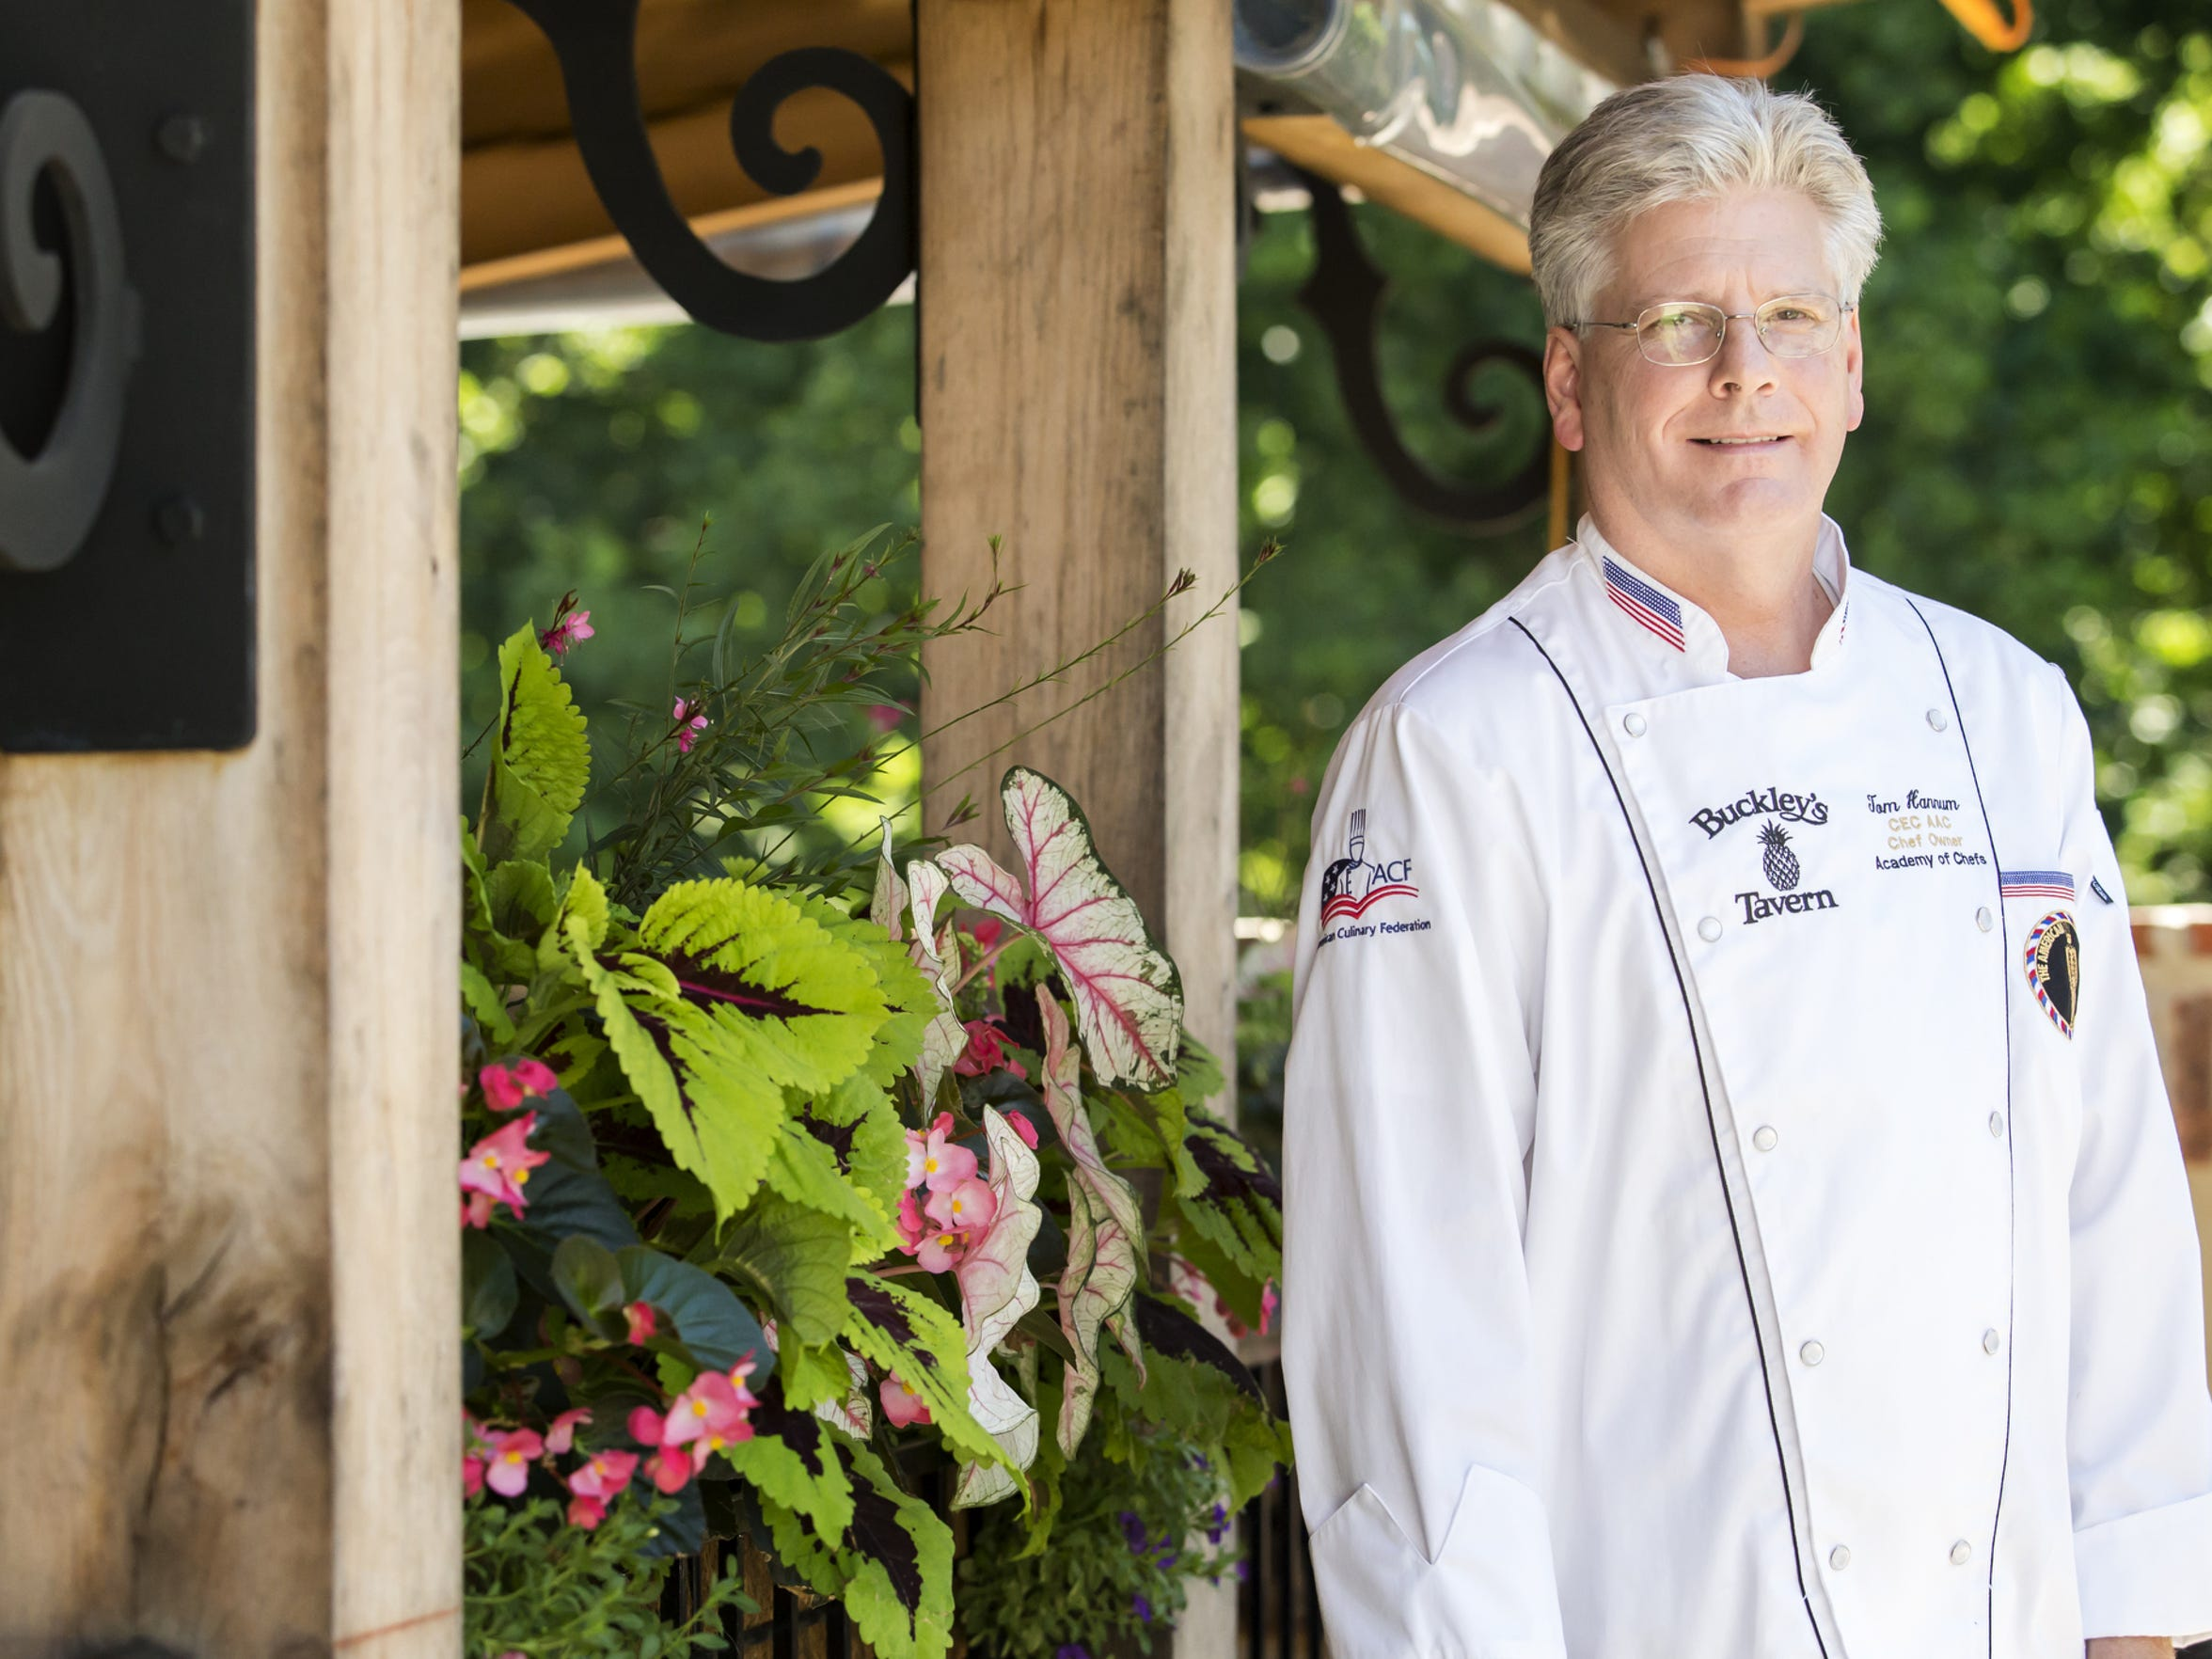 Buckley's Tavern chef and co-owner Tom Hannum poses